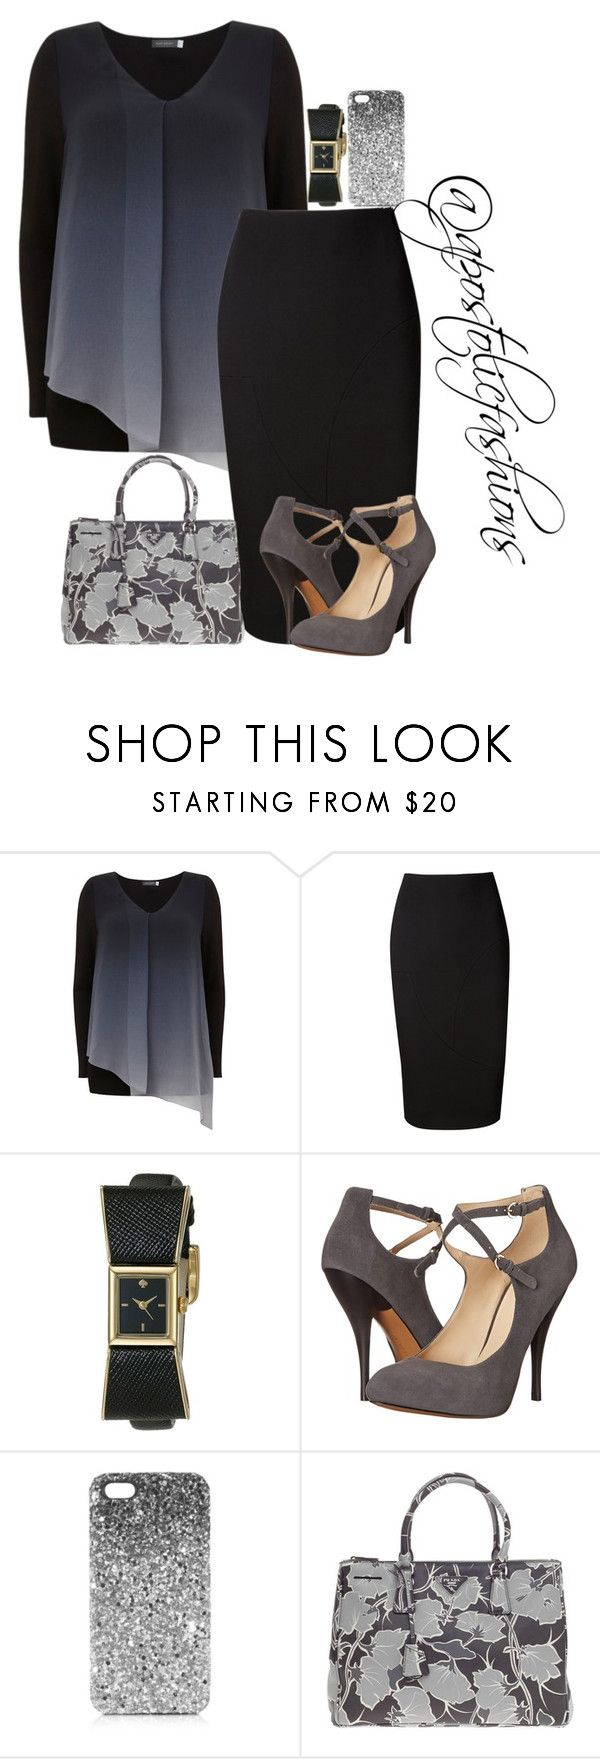 """Apostolic Fashions #1463"" by apostolicfashions ❤ liked on Polyvore featuring Mint Velvet, Victoria Beckham, Kate Spade, Nine West, Topshop, Prada, modestlykay and modestlywhit"